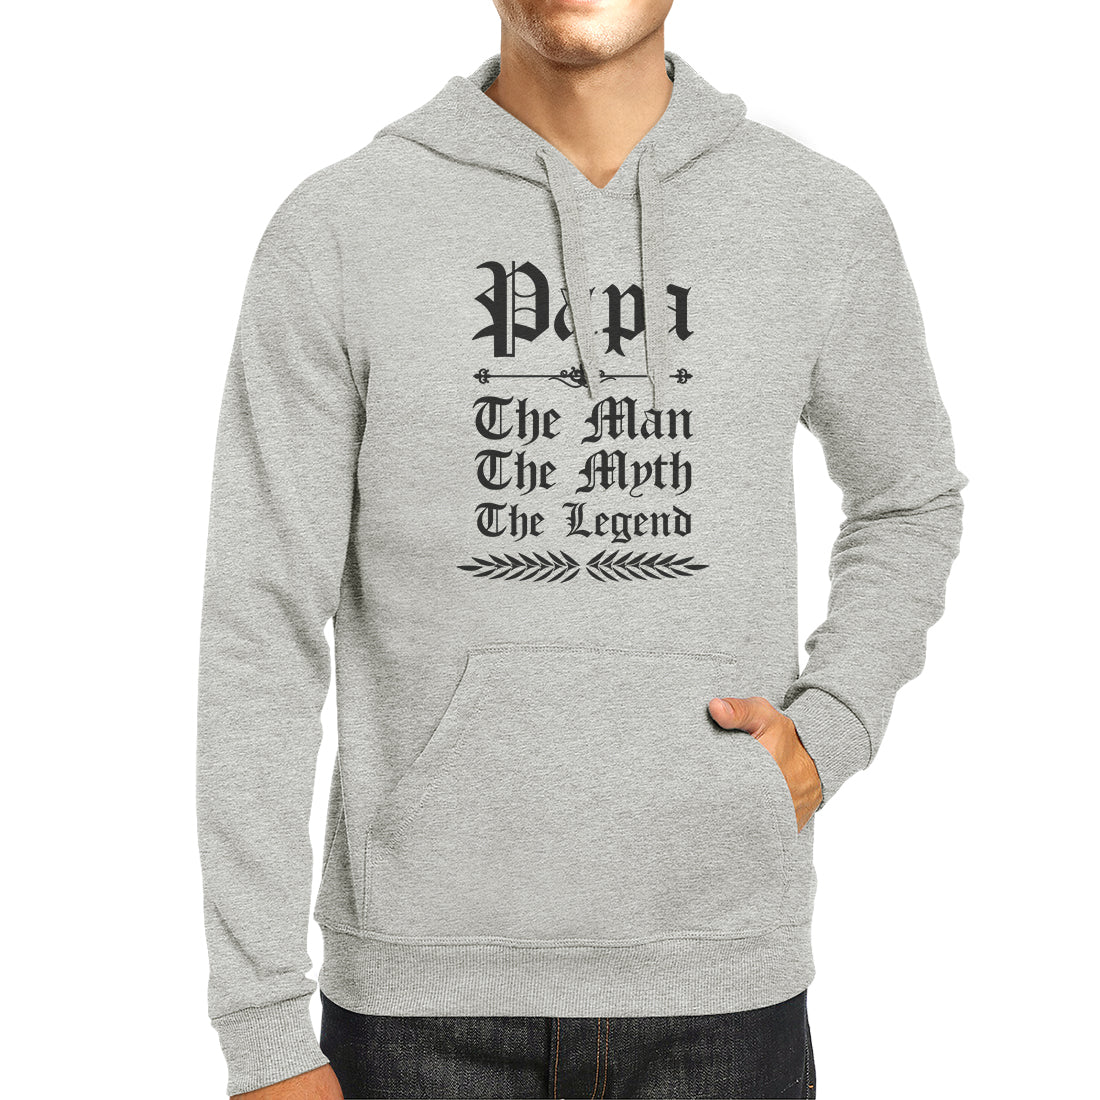 Vintage Gothic Papa Unisex Fleece Hoodie Unique Birthday Gift Idea 365 In Love Matching Gifts Ideas